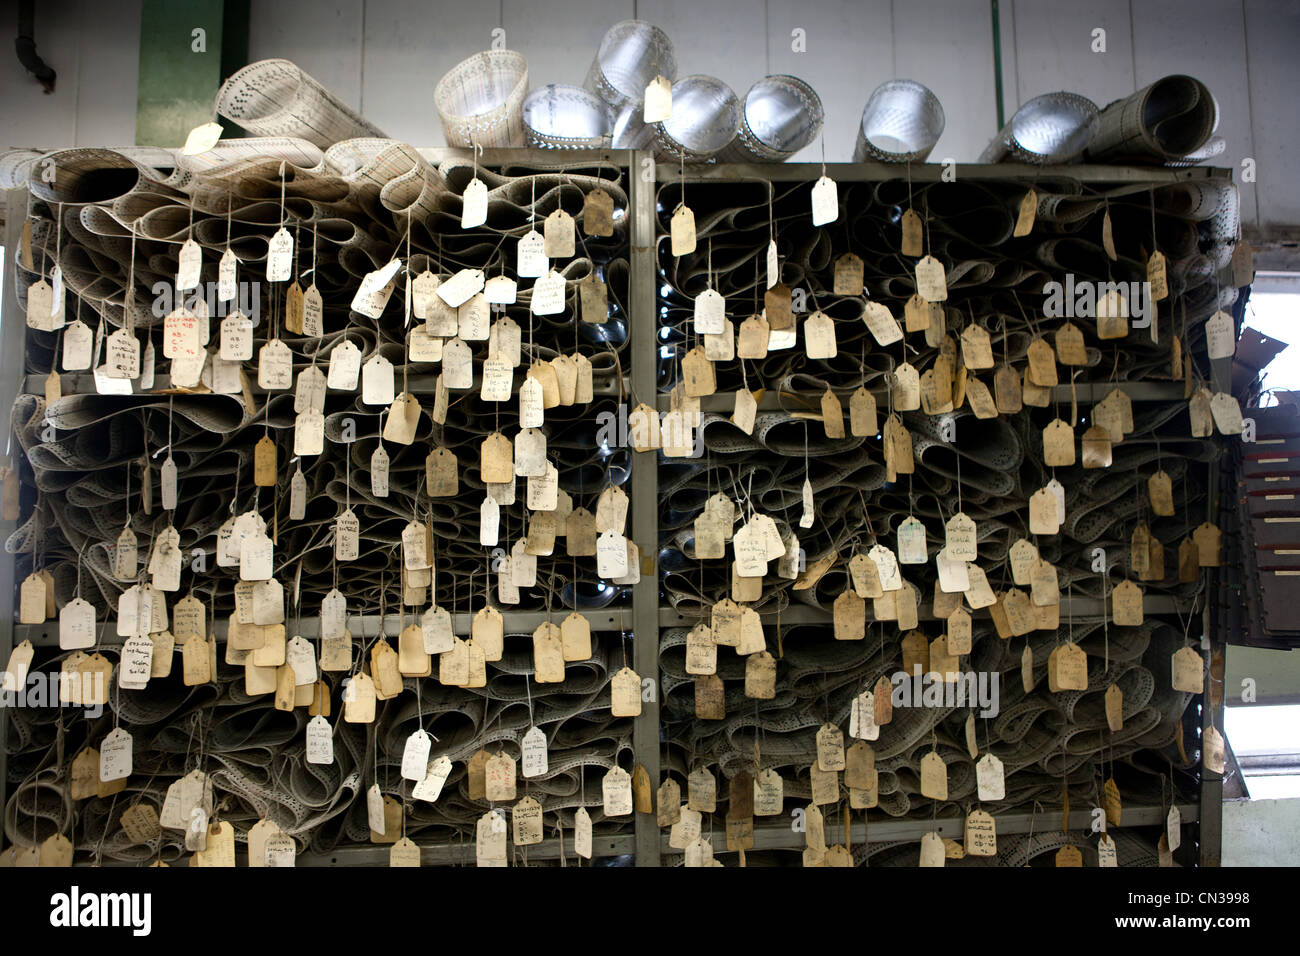 Tags in a factory - Stock Image